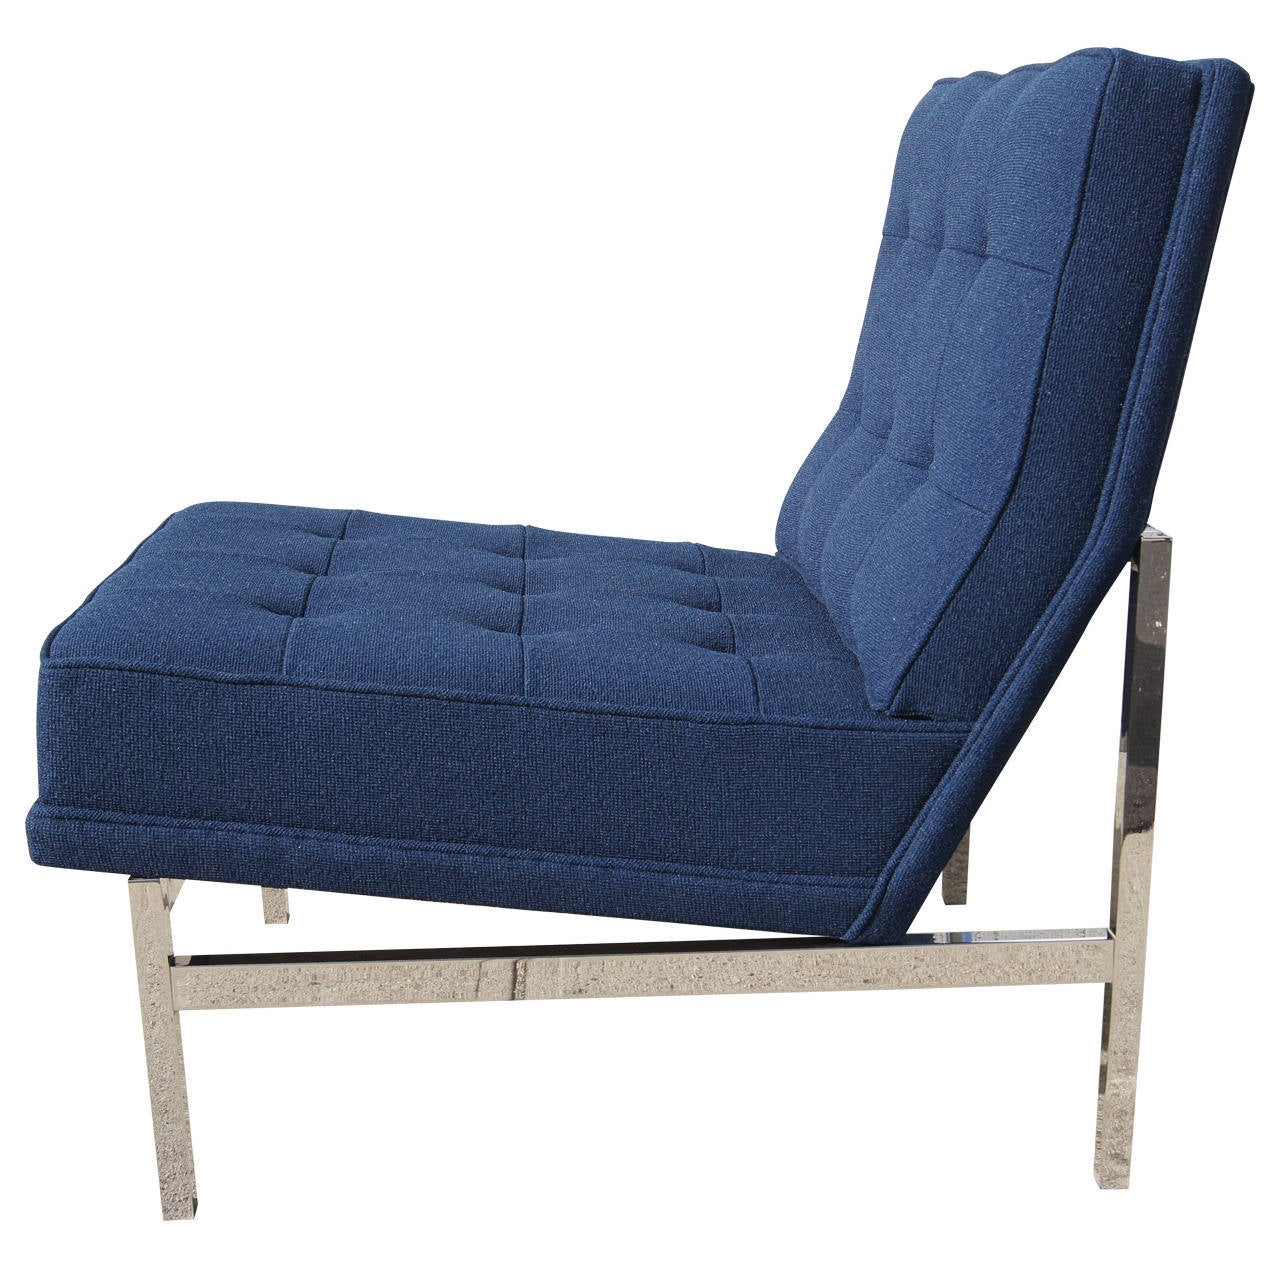 Armless Lounge Chair by Florence Knoll at 1stdibs